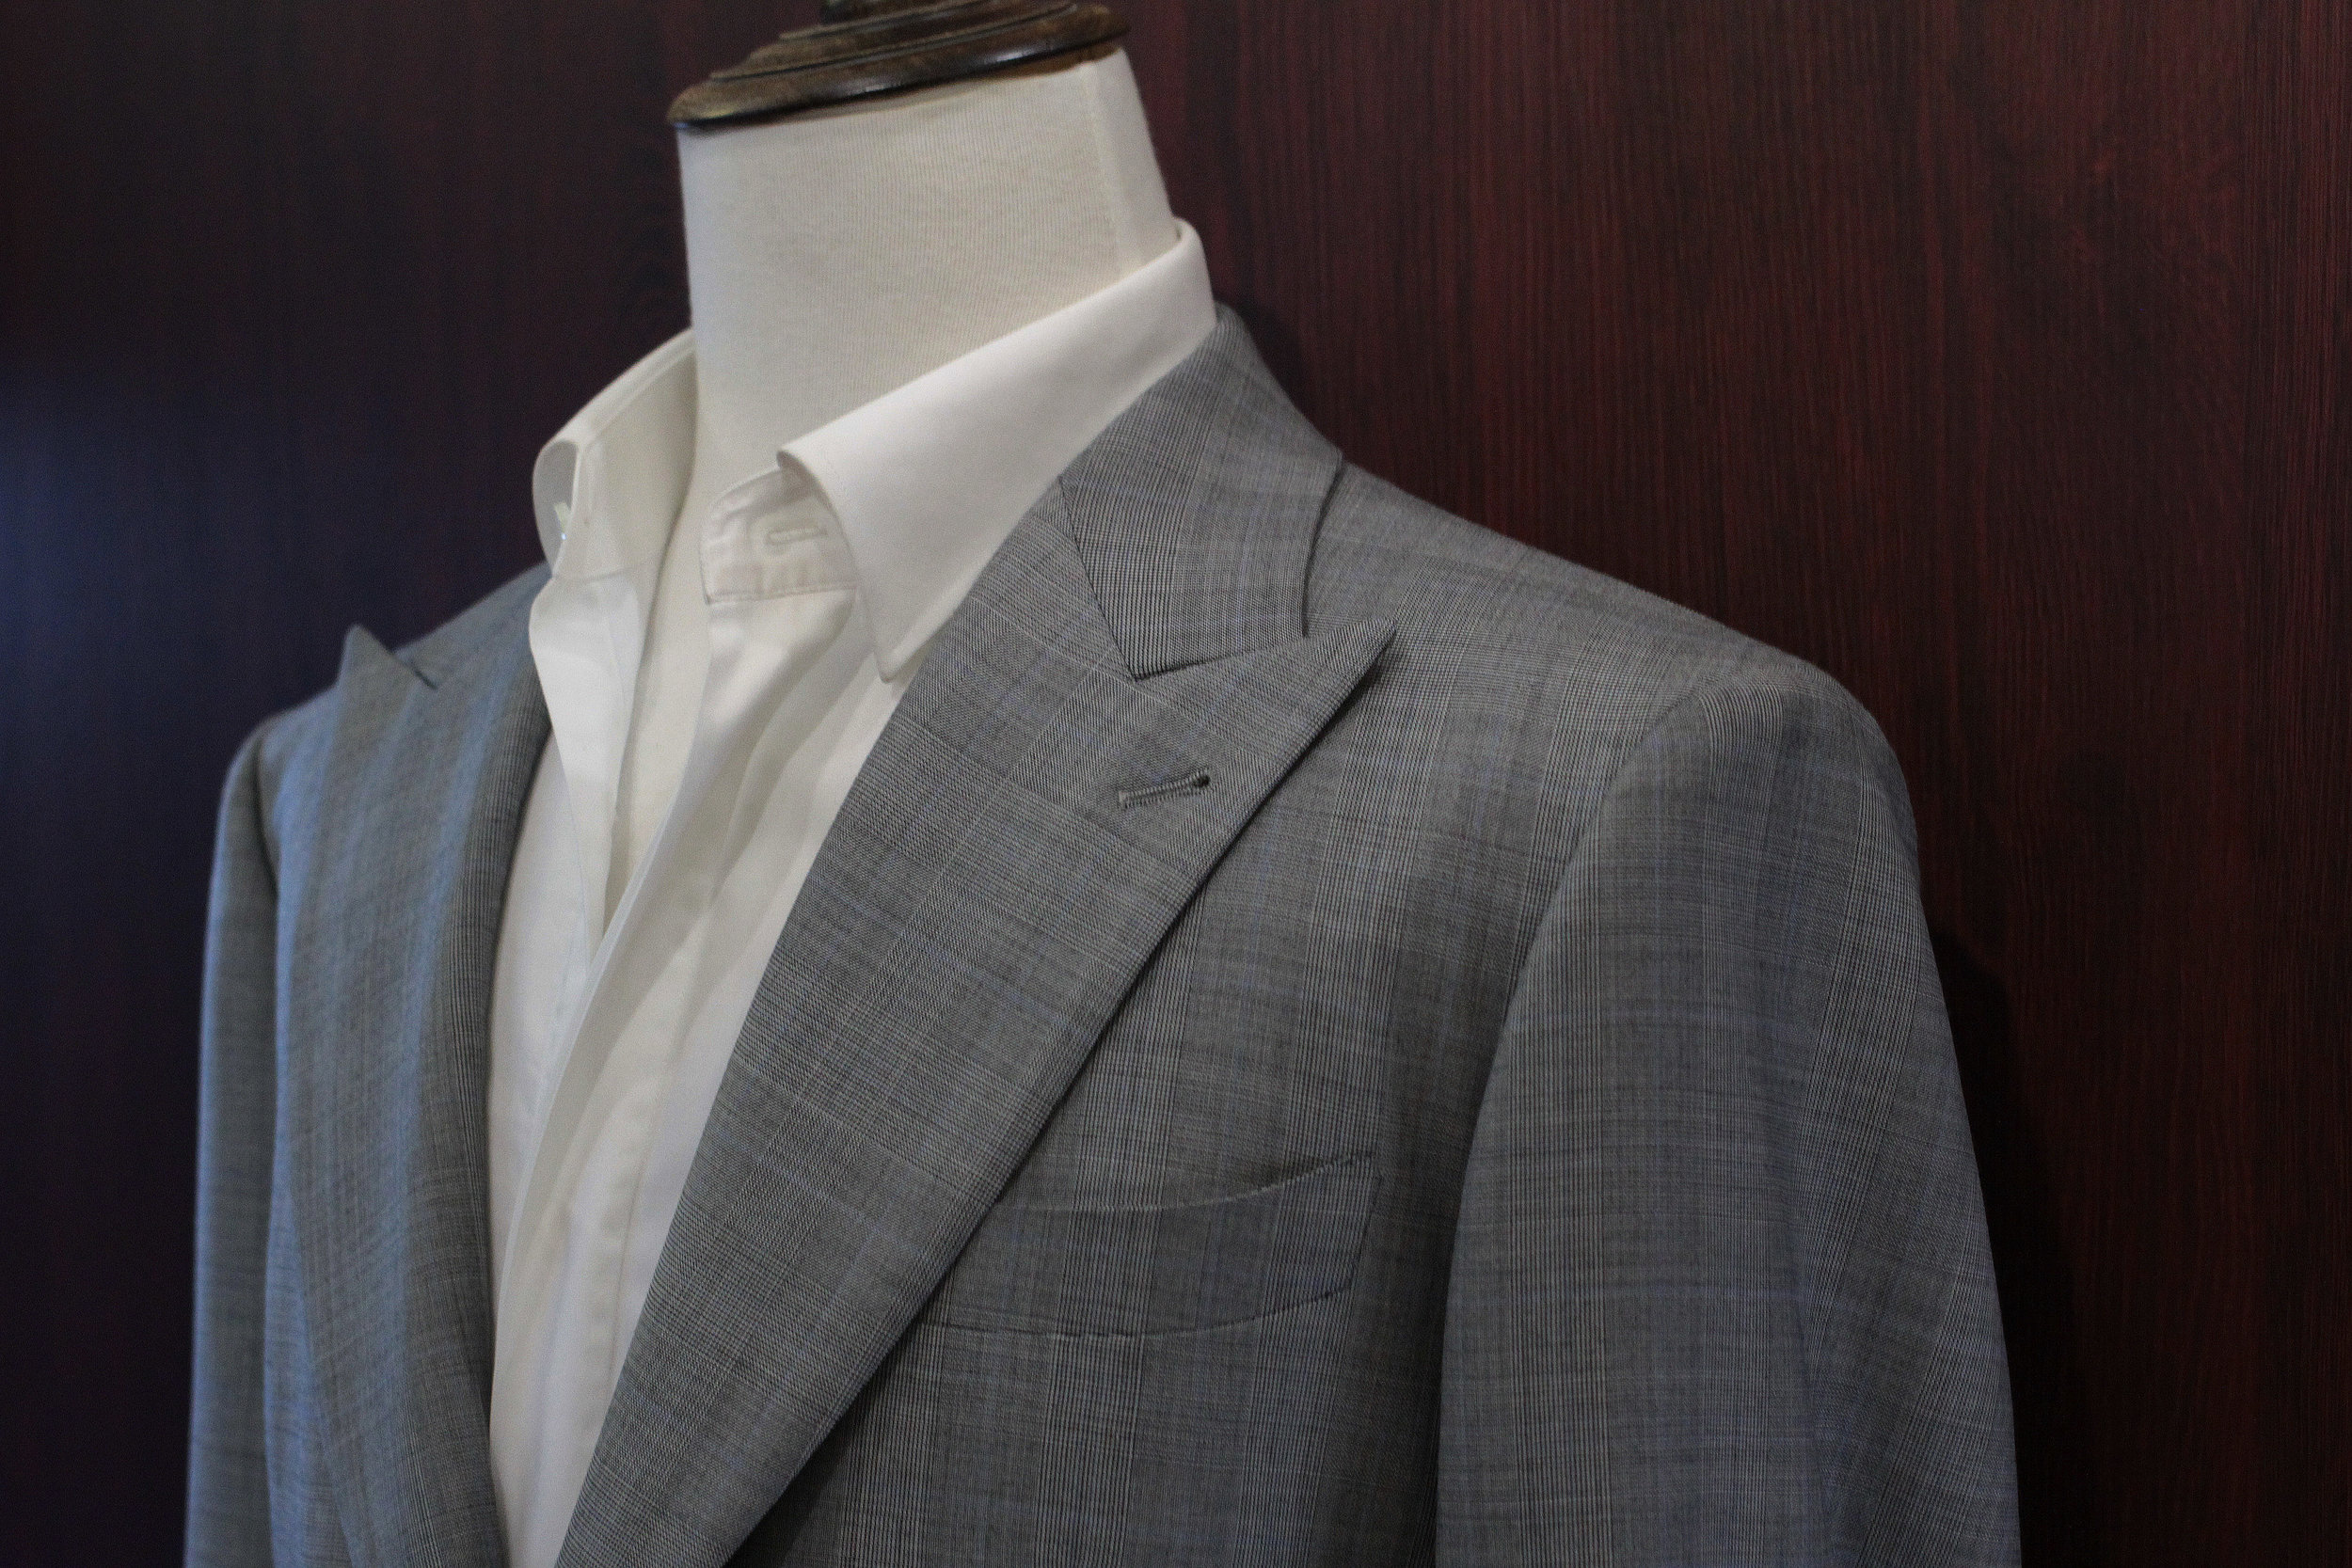 The Novelty Grey Filarte Glen checks prince of wales grey made suits made to measure bespoke suits label front.JPG